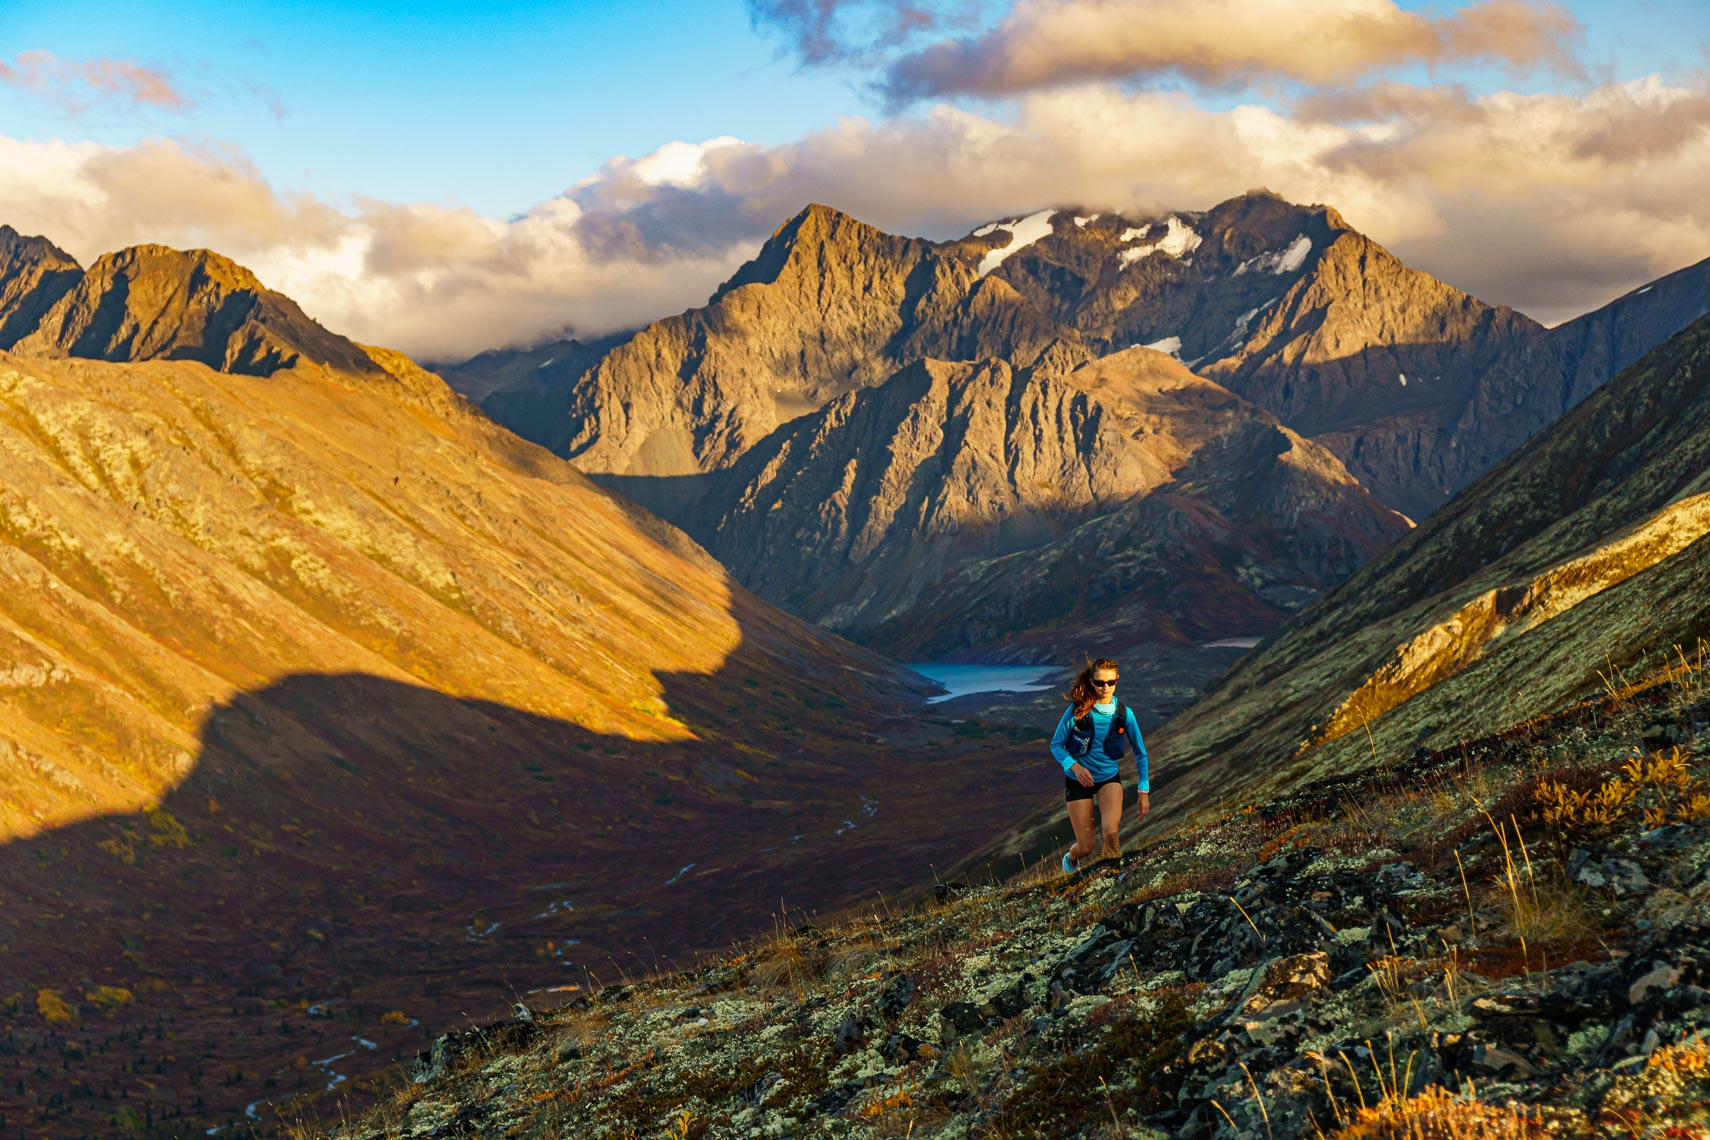 Alaska Mountain Runner Above Eagle River | Michael DeYoung